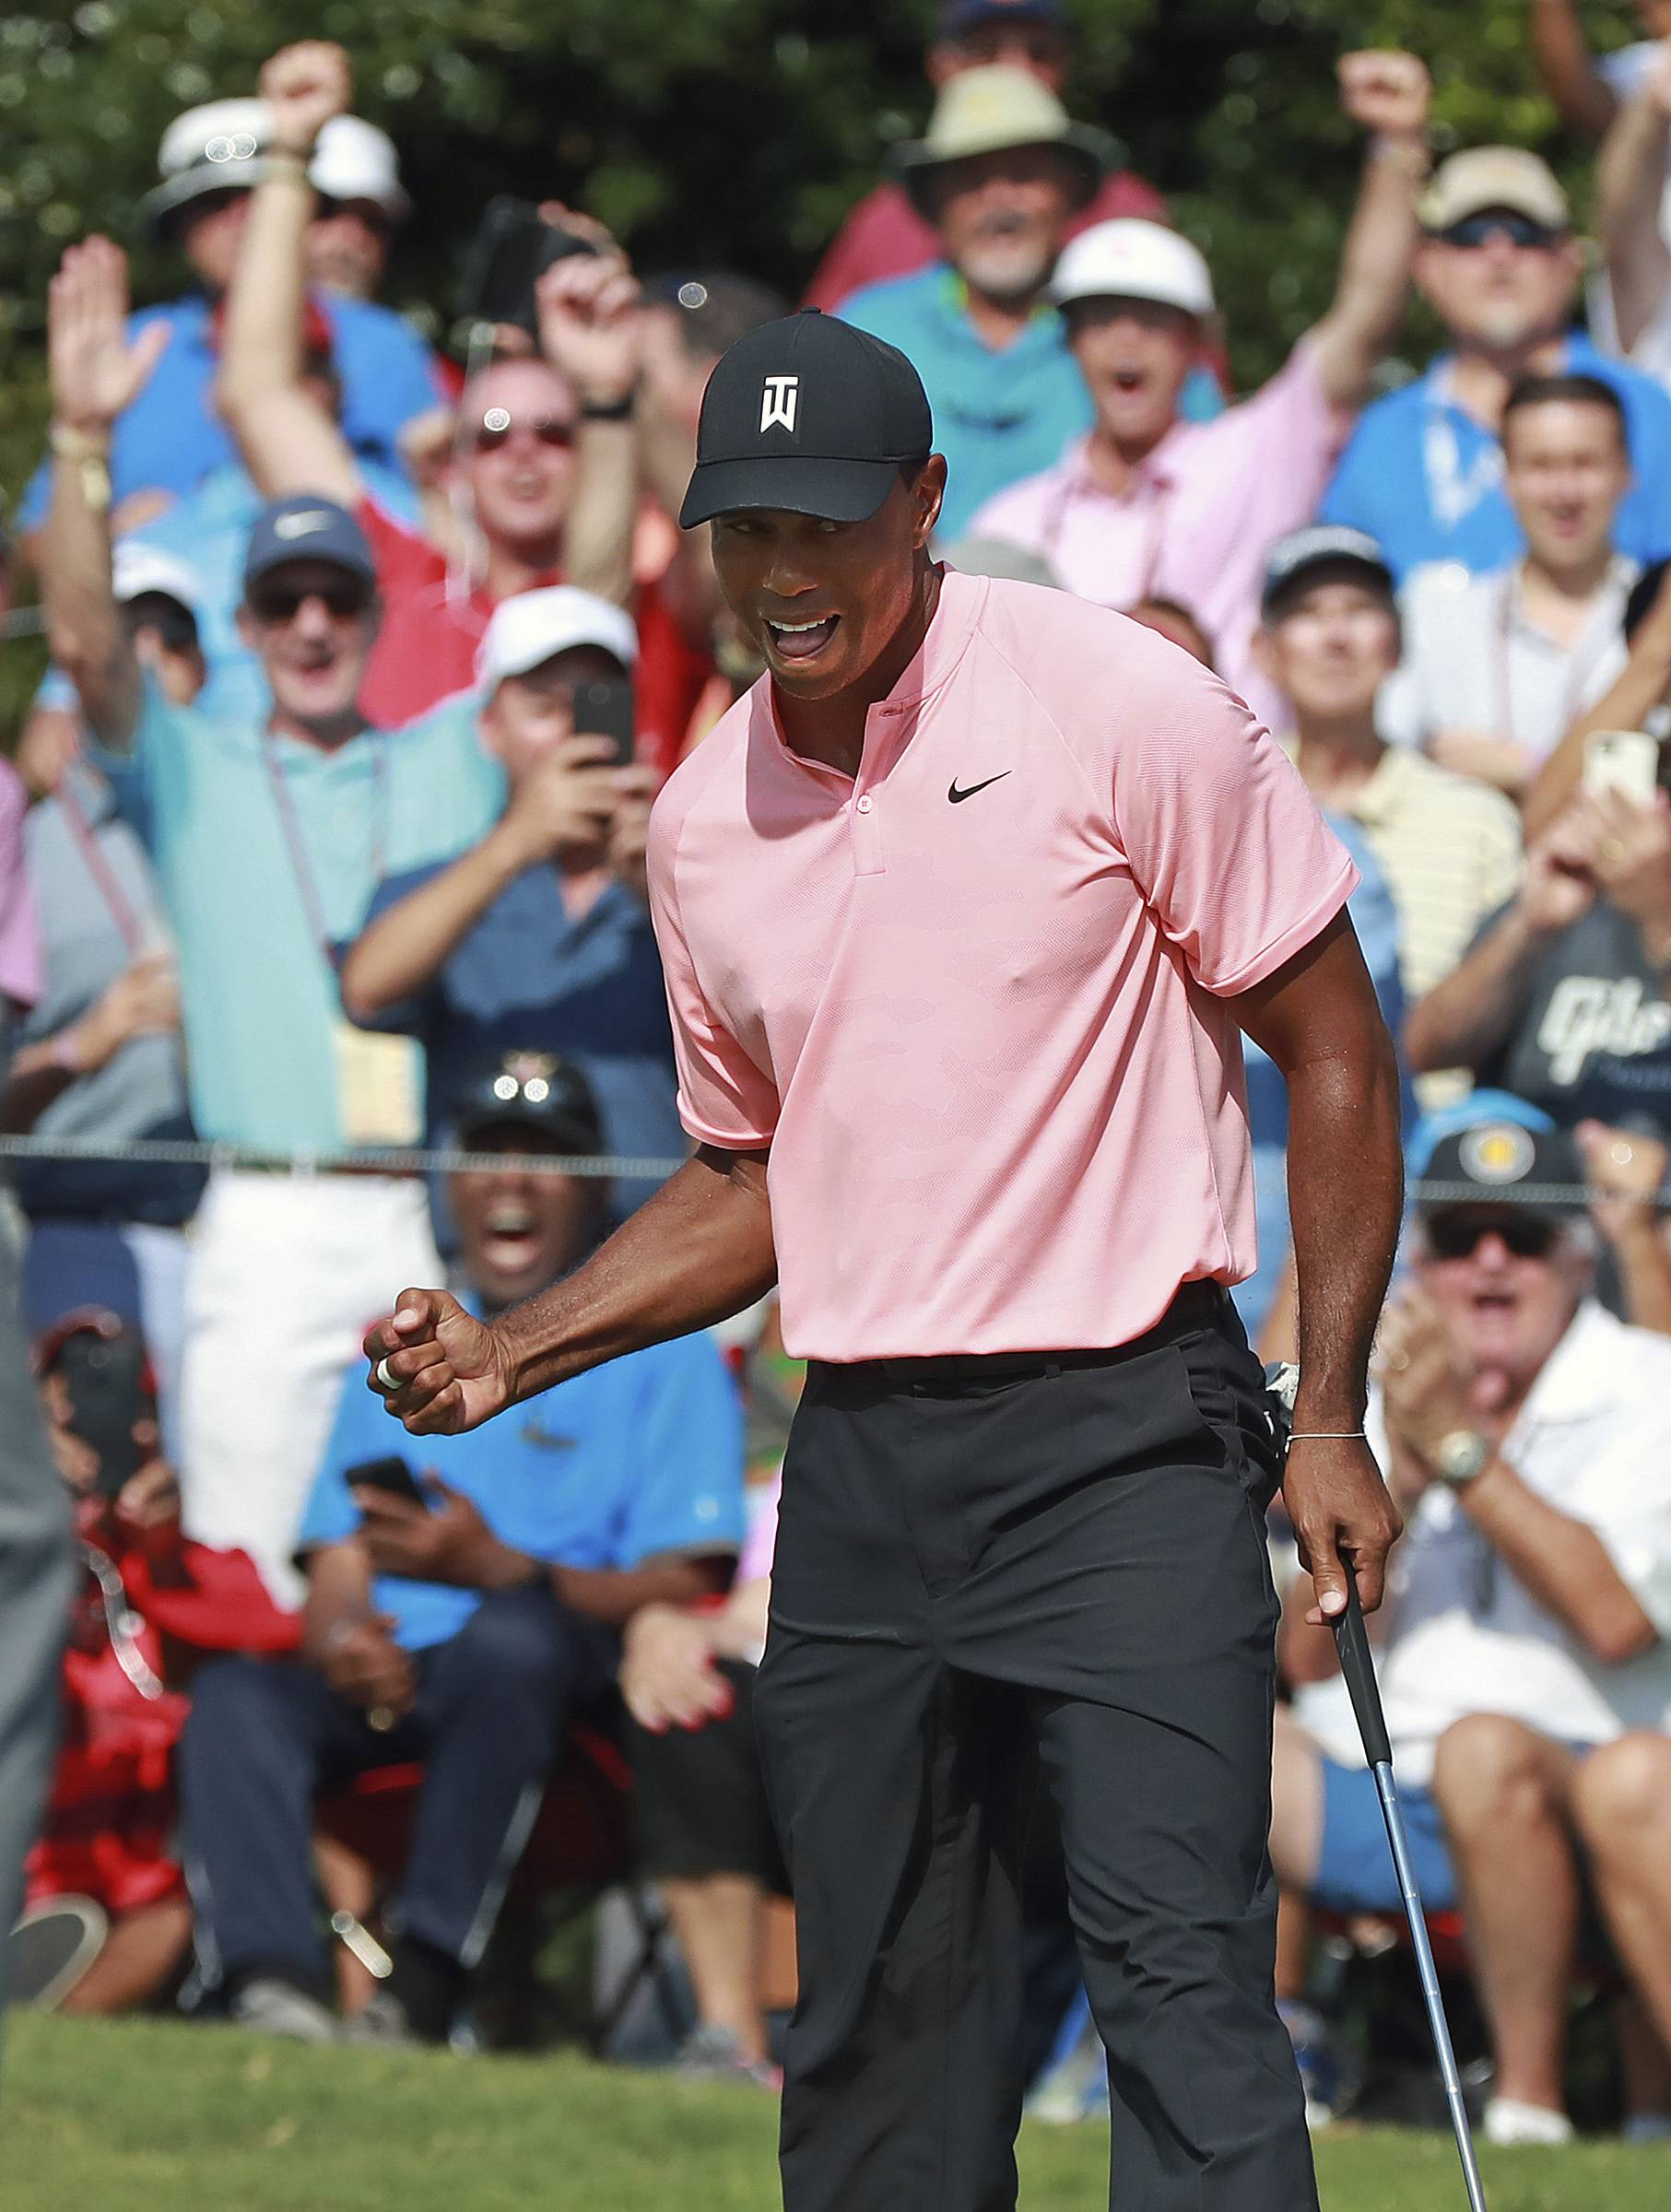 Tiger Woods eagled the 18th hole Thursday to grab a share of the first-round lead at the Tour Championship in Atlanta.